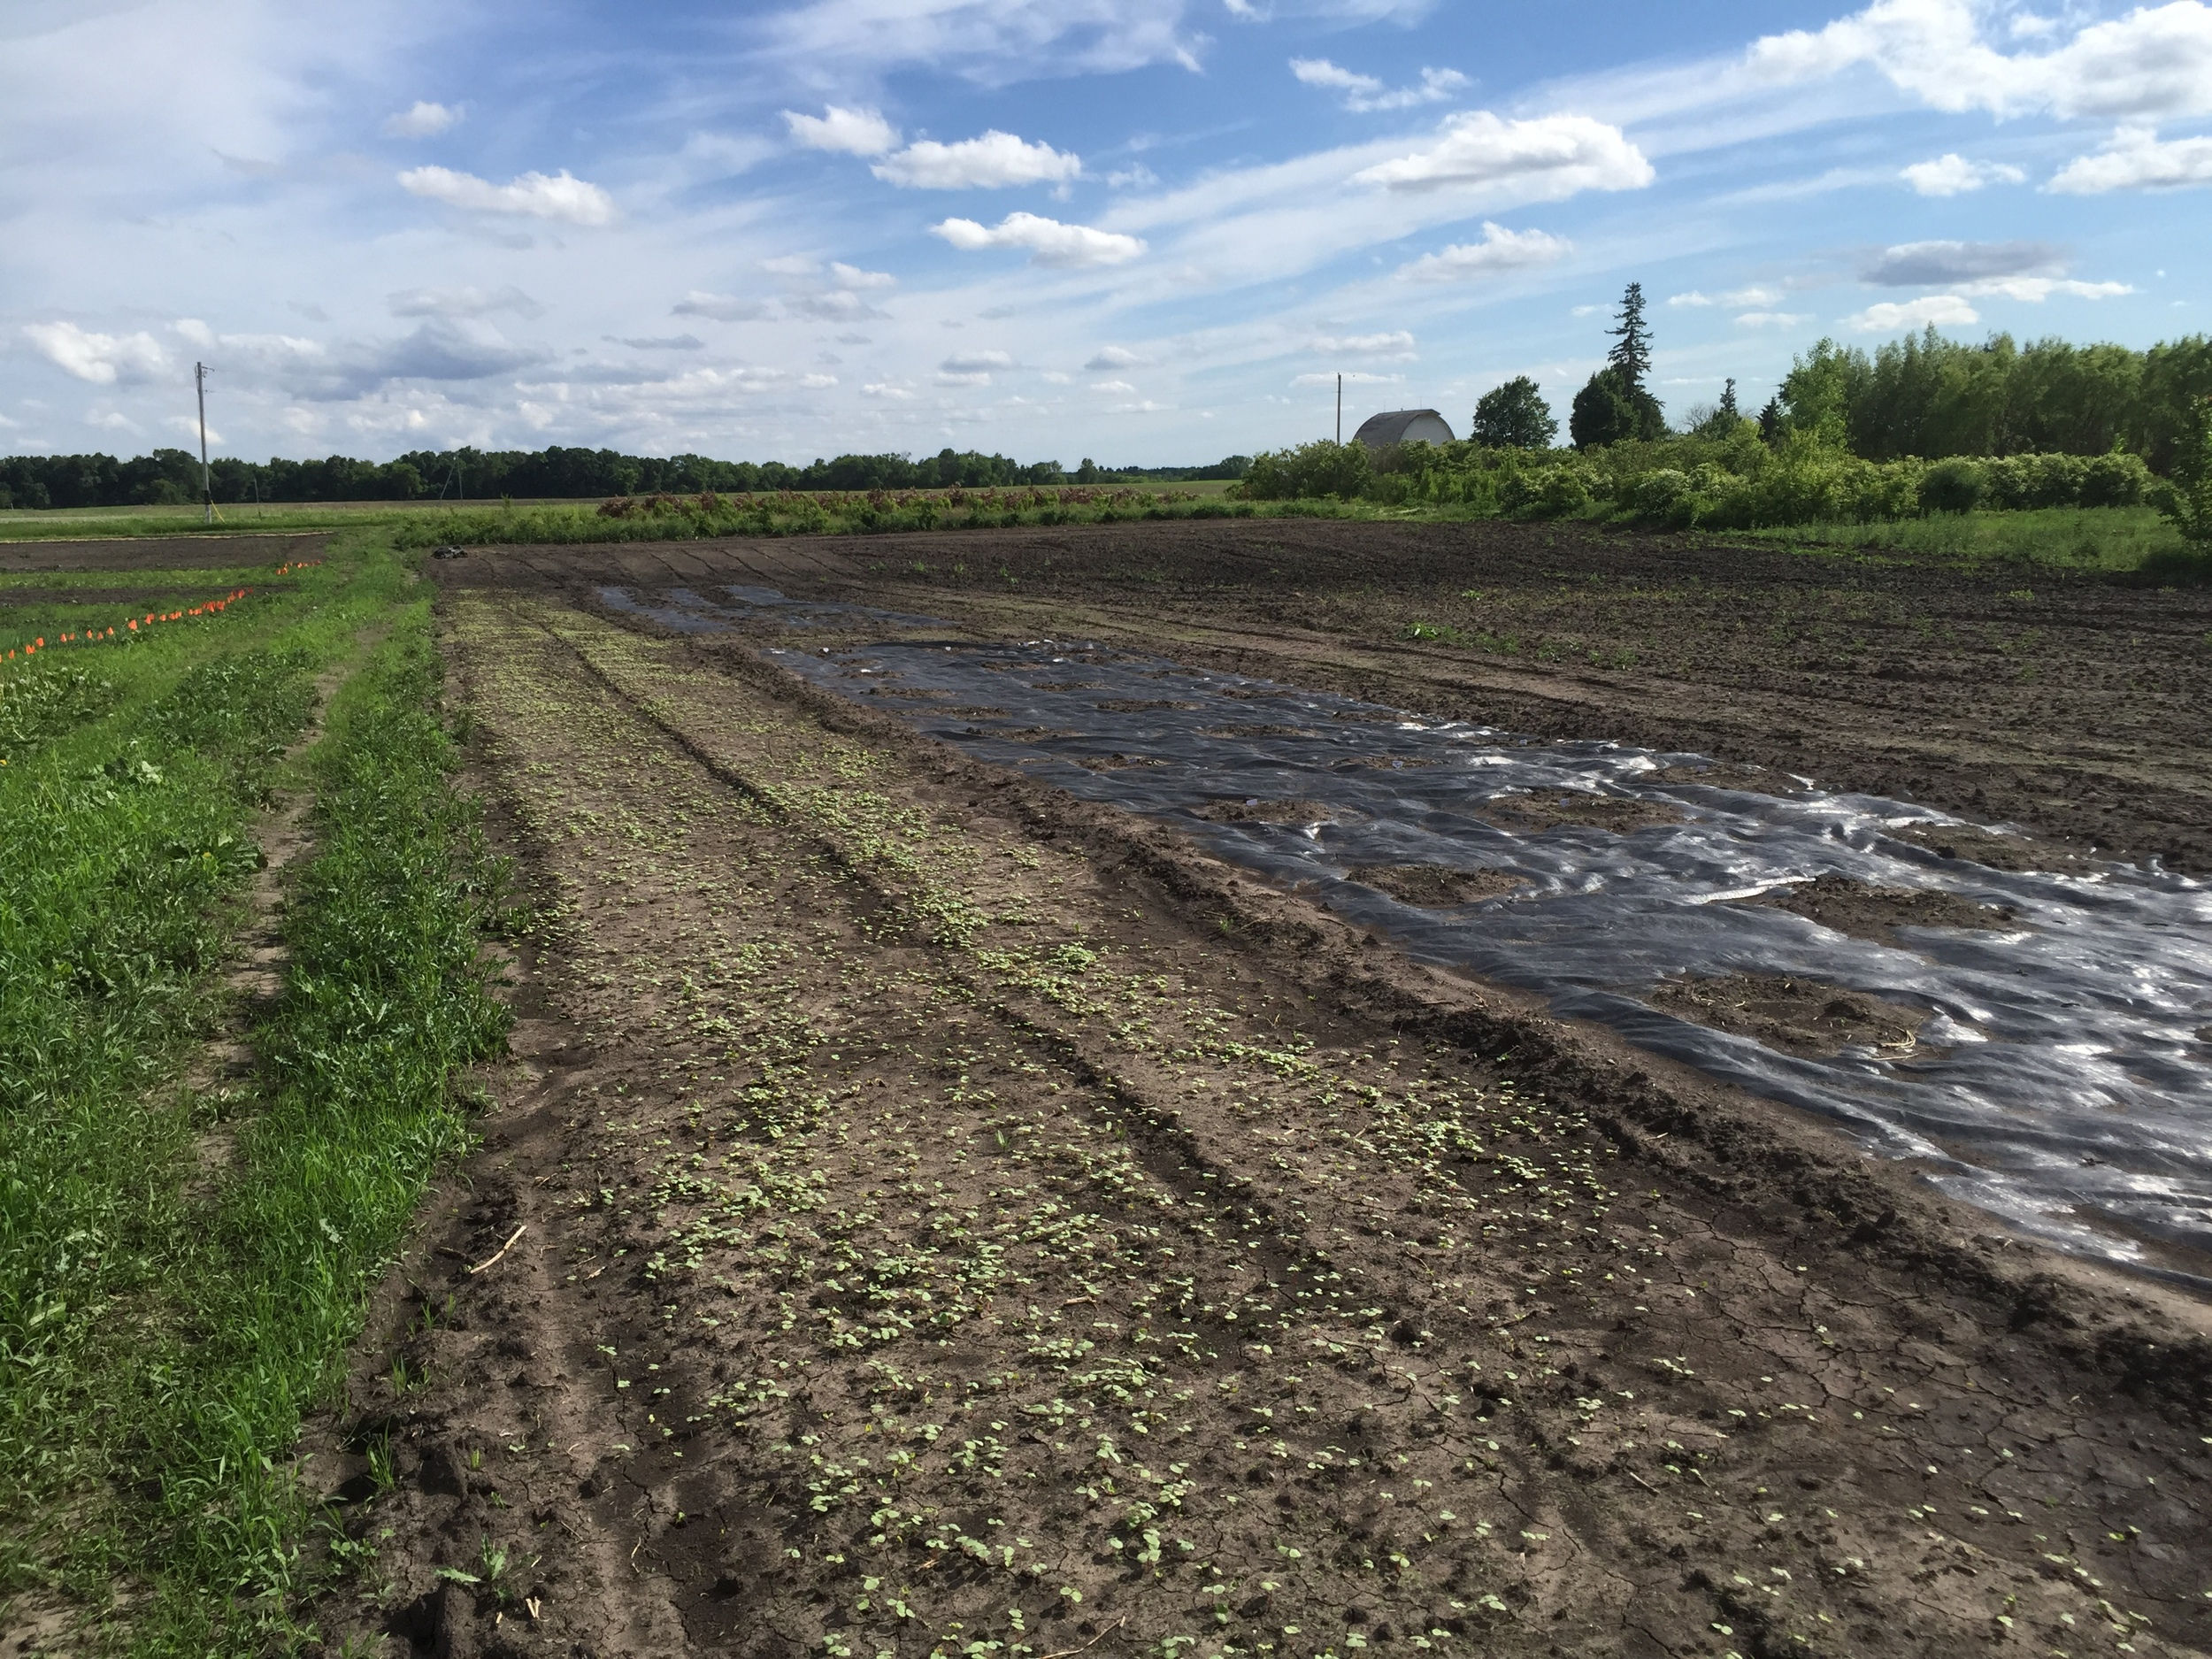 To the left is buckwheat, a cover crop that suppresses weeds and attracts pollinators. To the right is landscape fabric with spaghetti squash and honey dew melon planted.